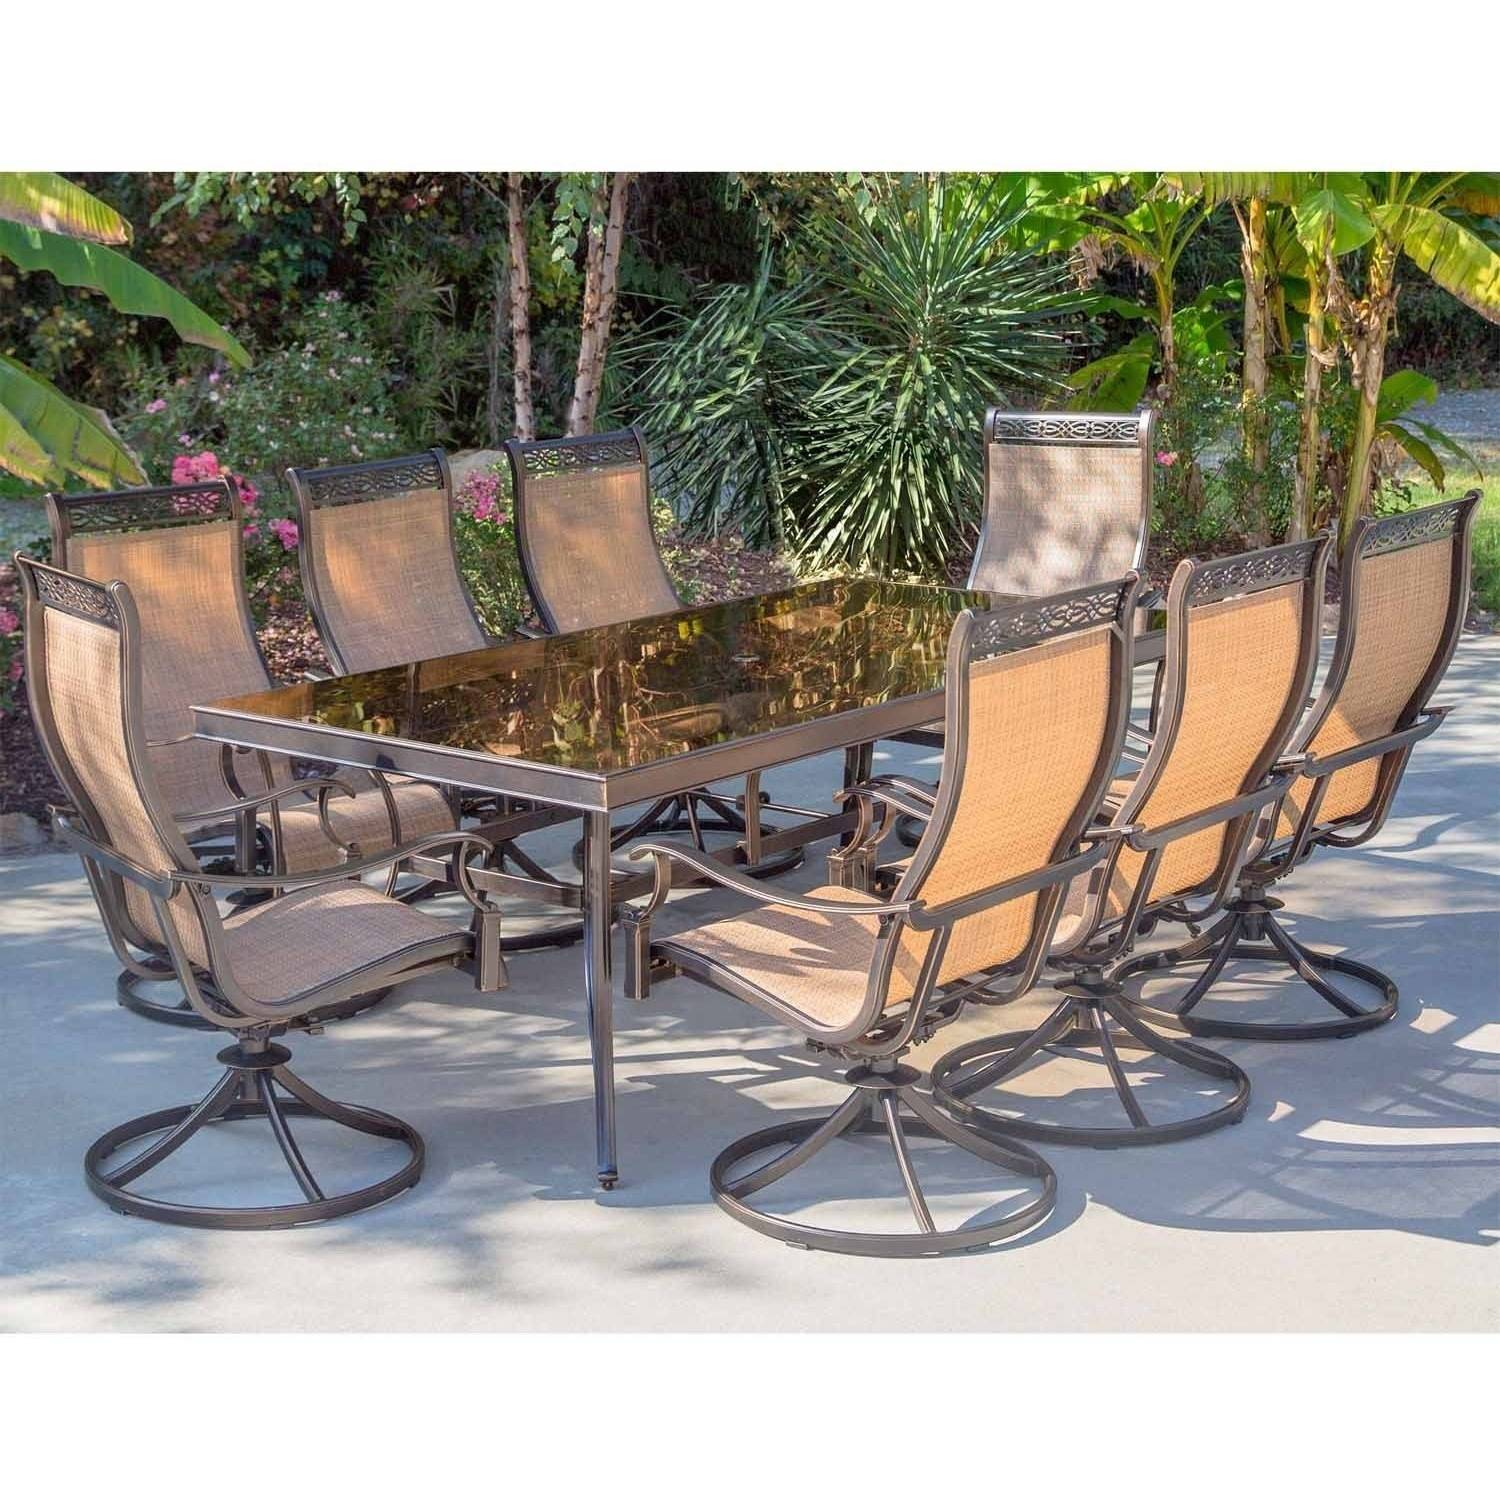 """Hanover Outdoor Monaco 9-Piece Sling Dining Set with 42"""" x 84"""" Glass-Top Table and 8 Swivel Rockers in Cedar"""